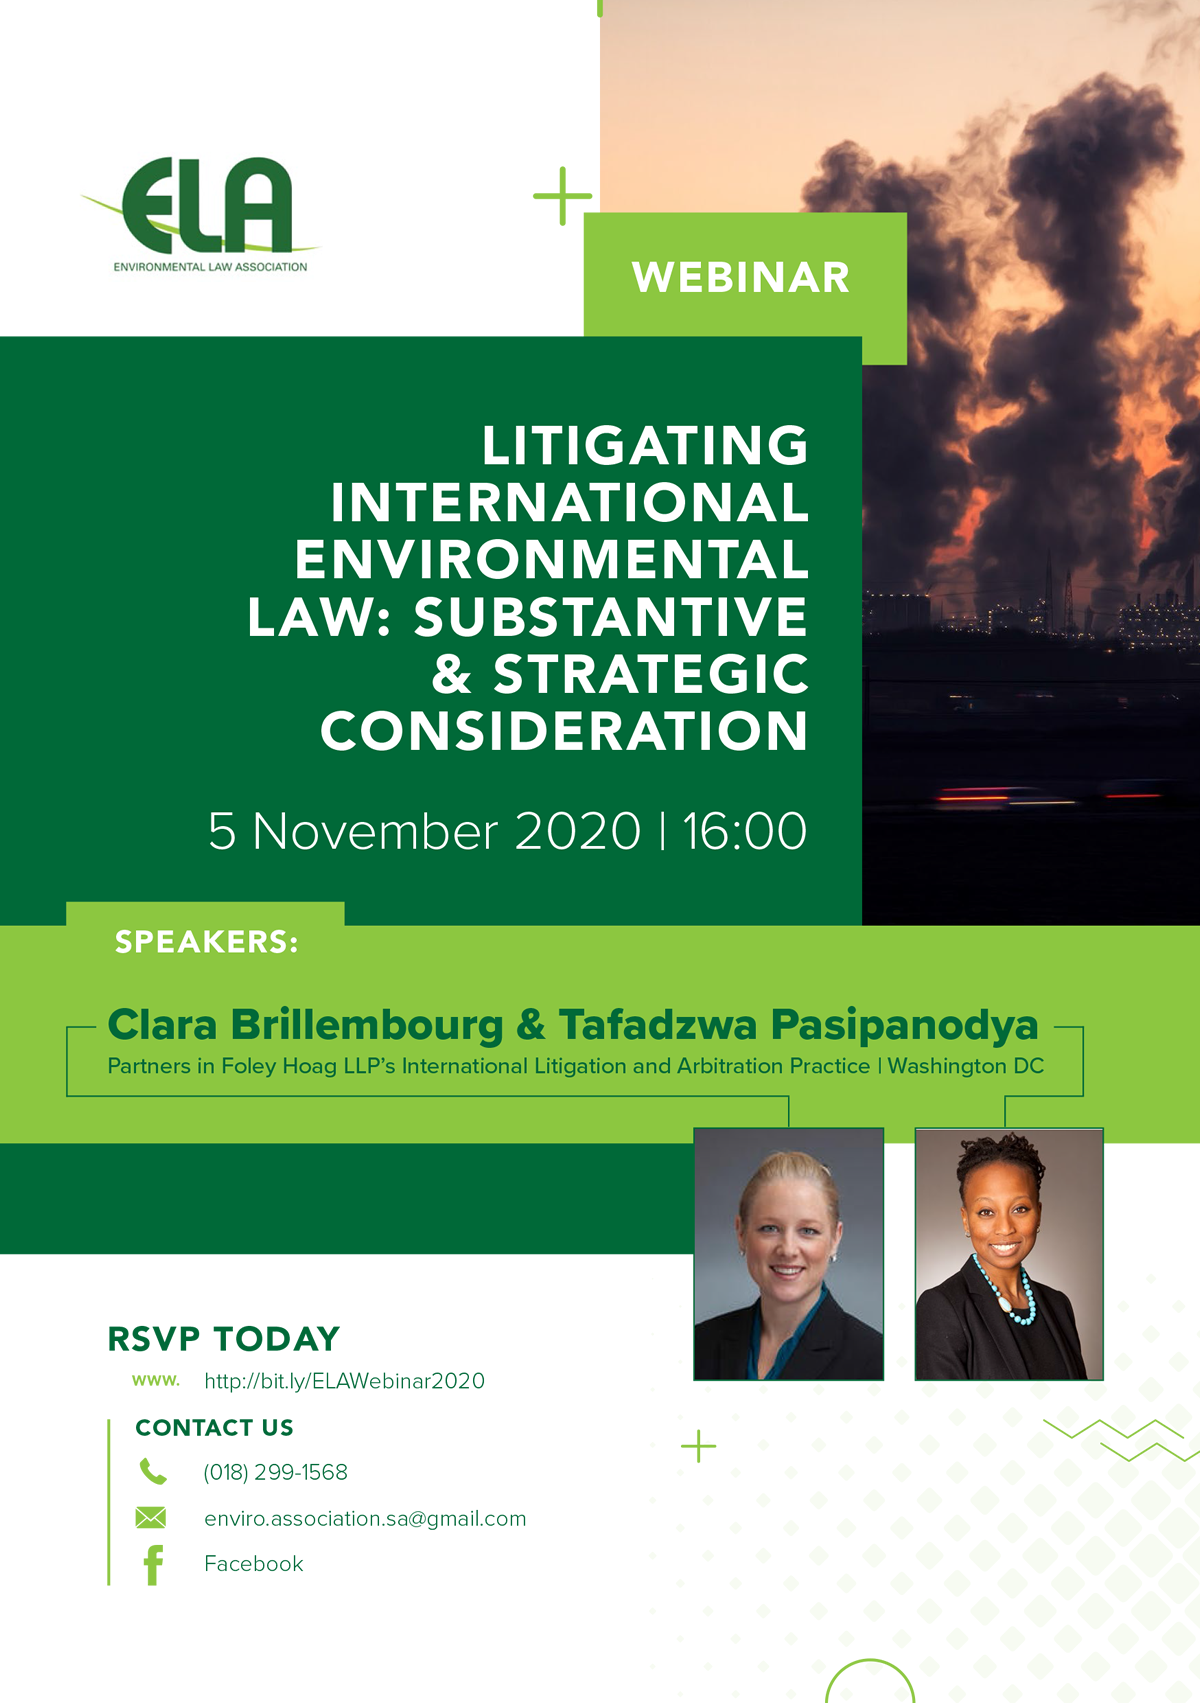 ELA Webinar: Litigating International Environmental Law: Substantive & Strategic Considerations